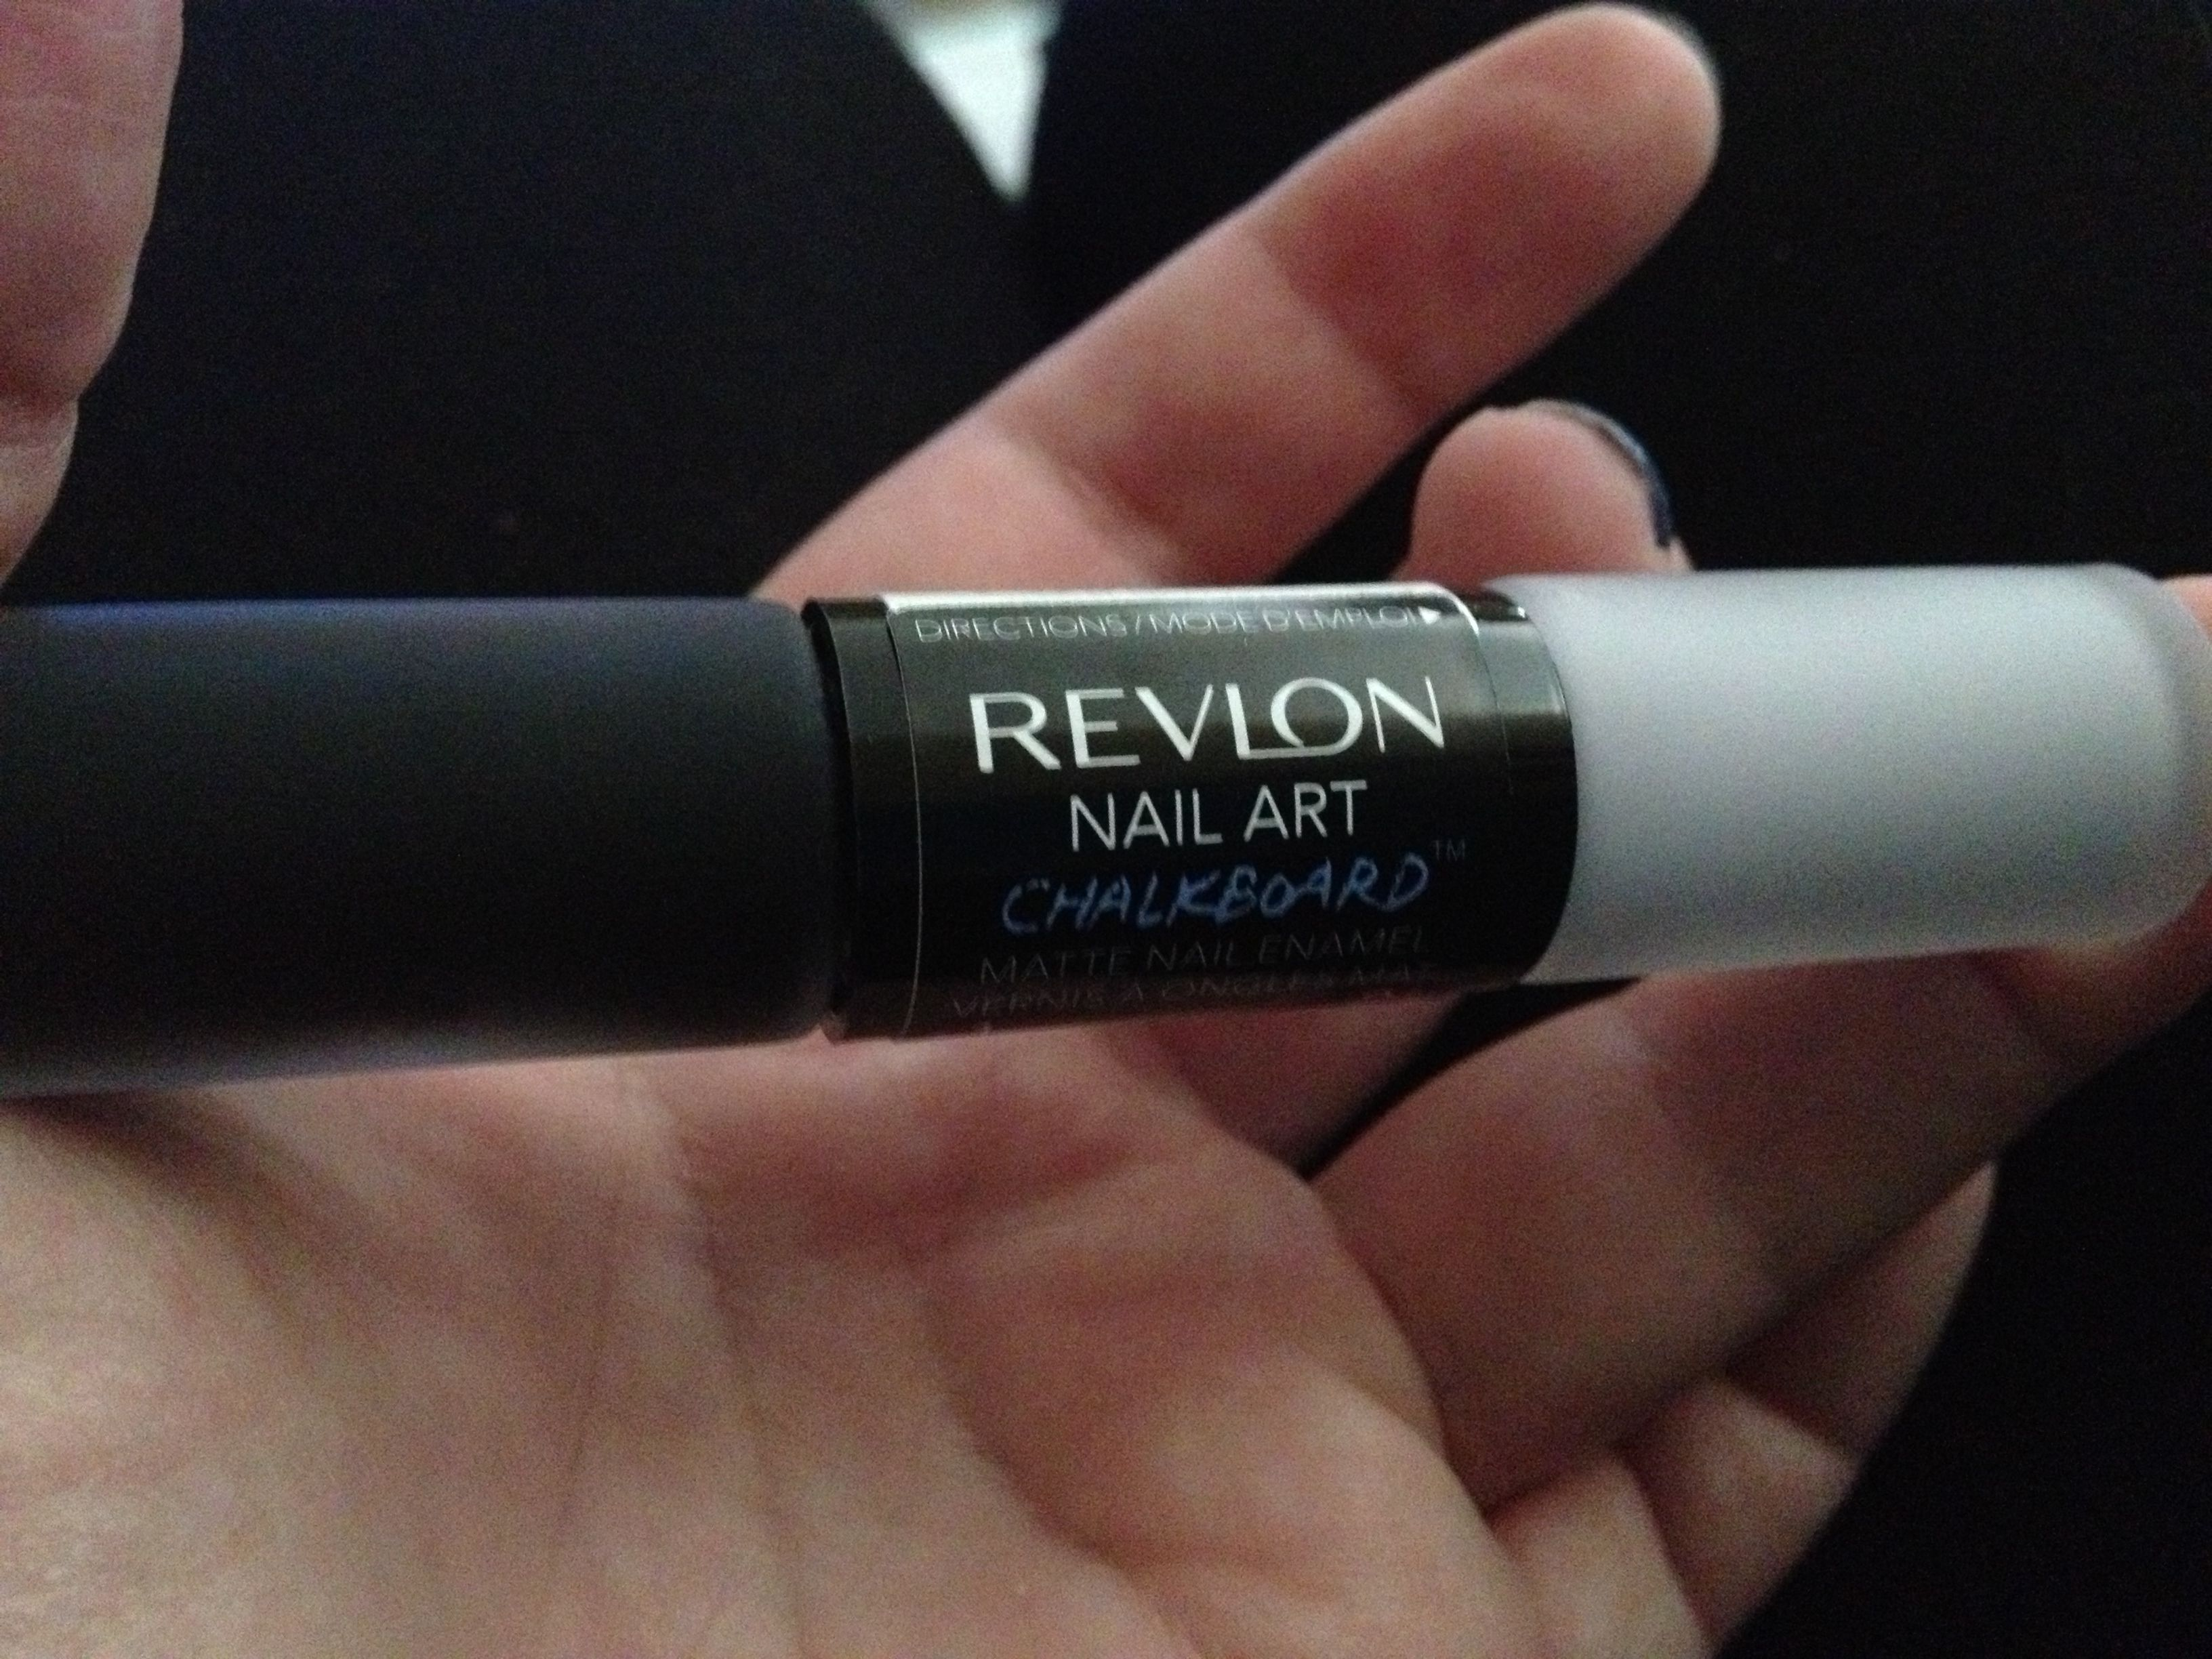 New From Revlonalkboard Nail Polish They Have Black Base That